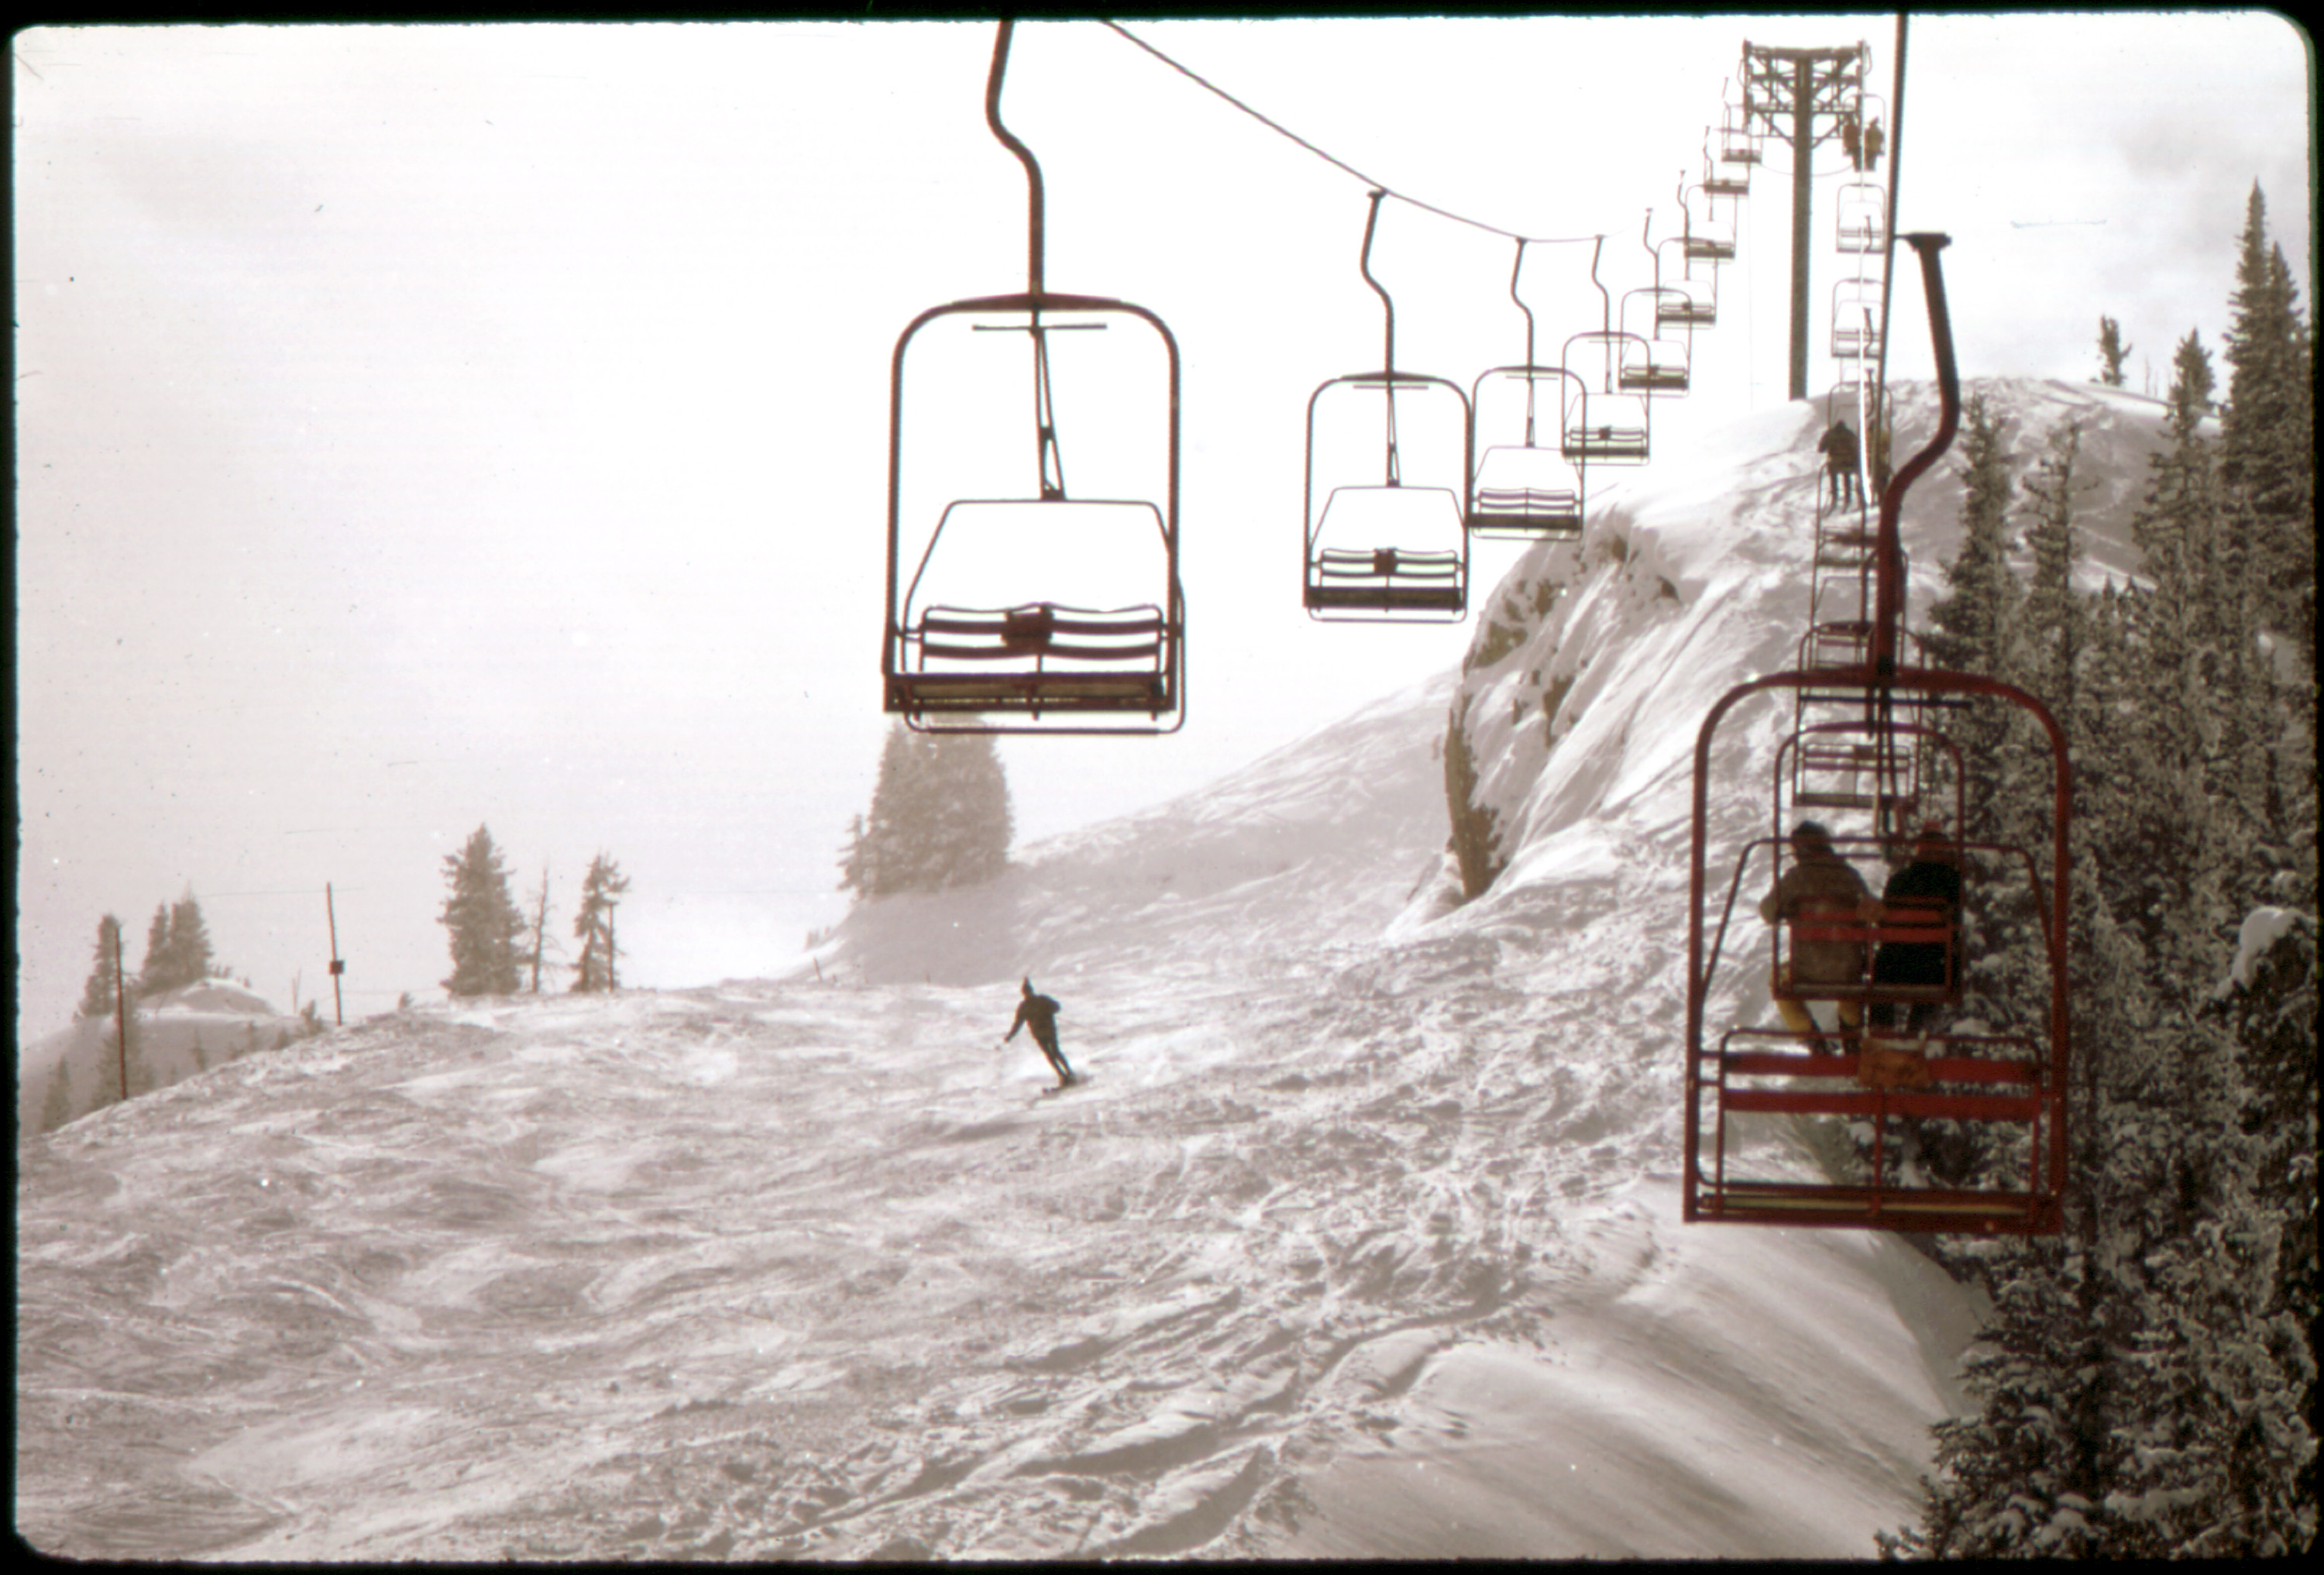 Chairlifts photo